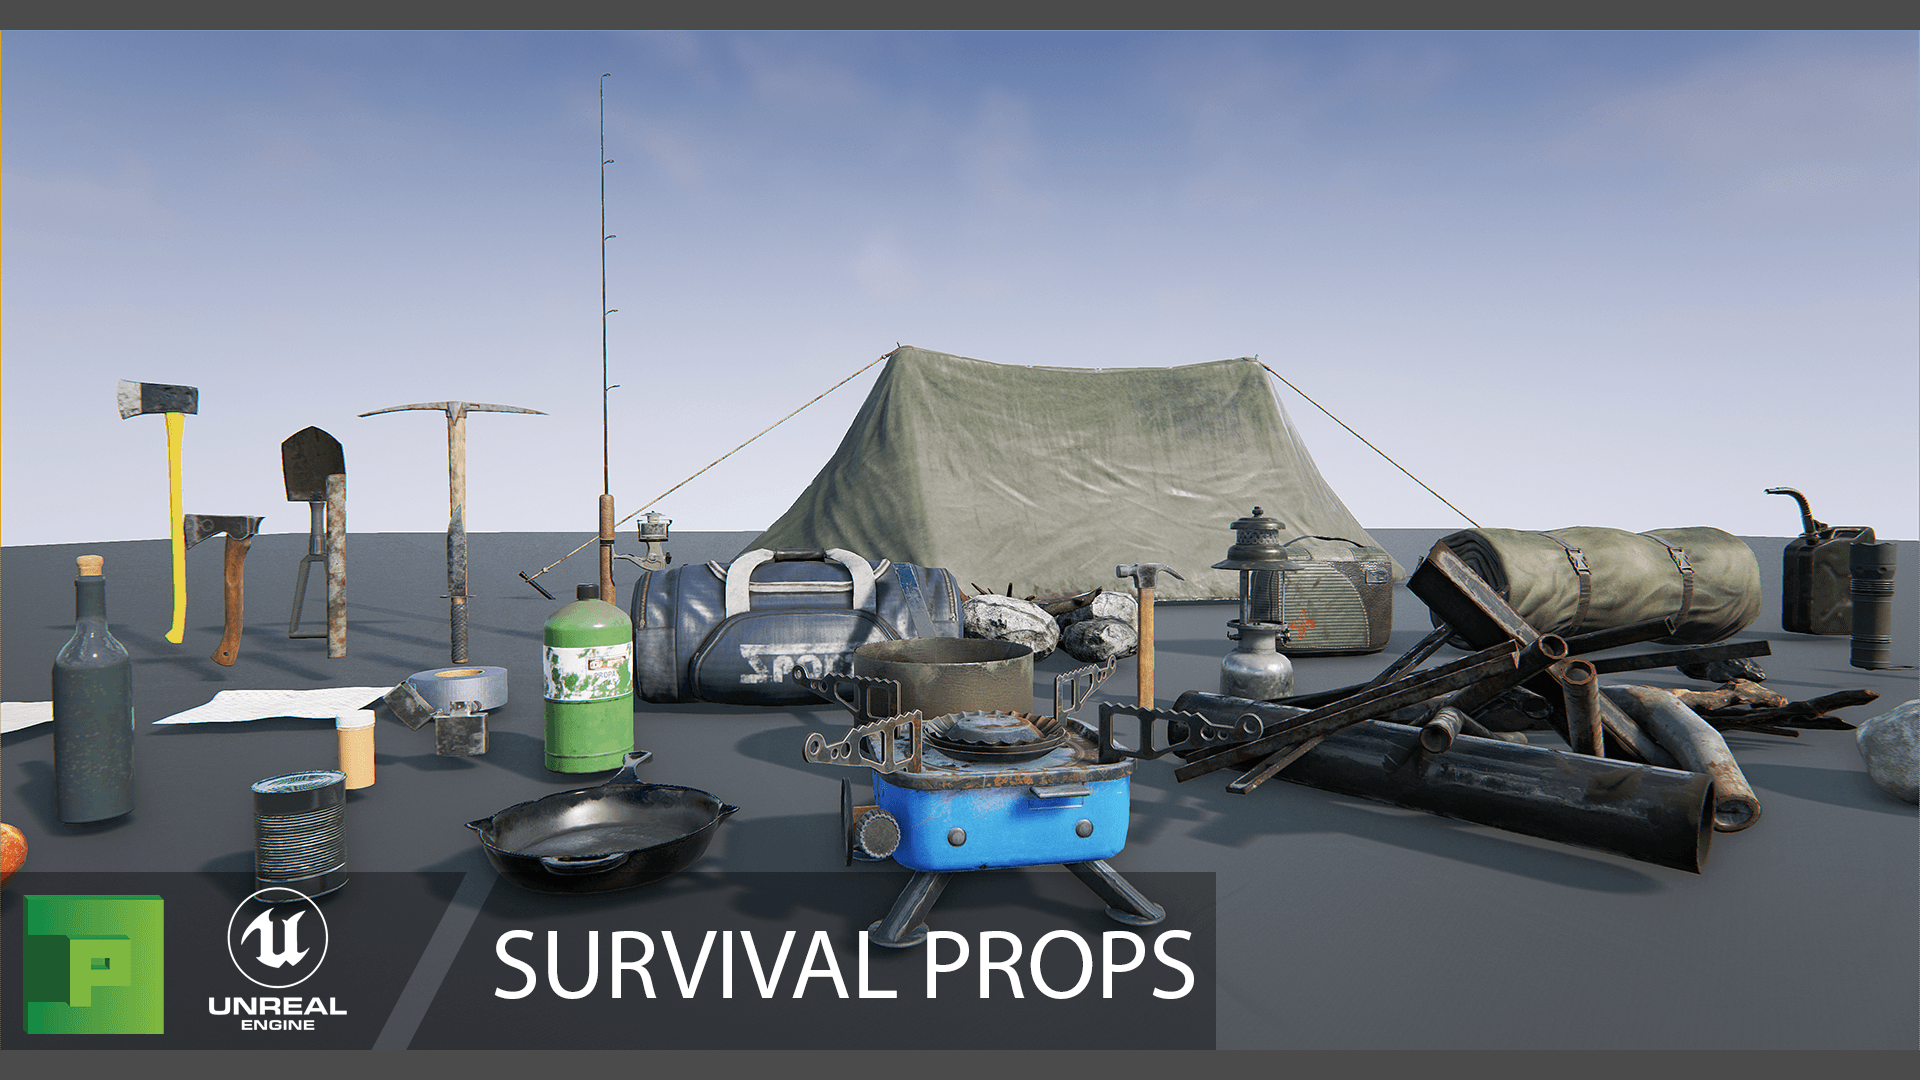 Survival Props by PolyPixel in Props - UE4 Marketplace